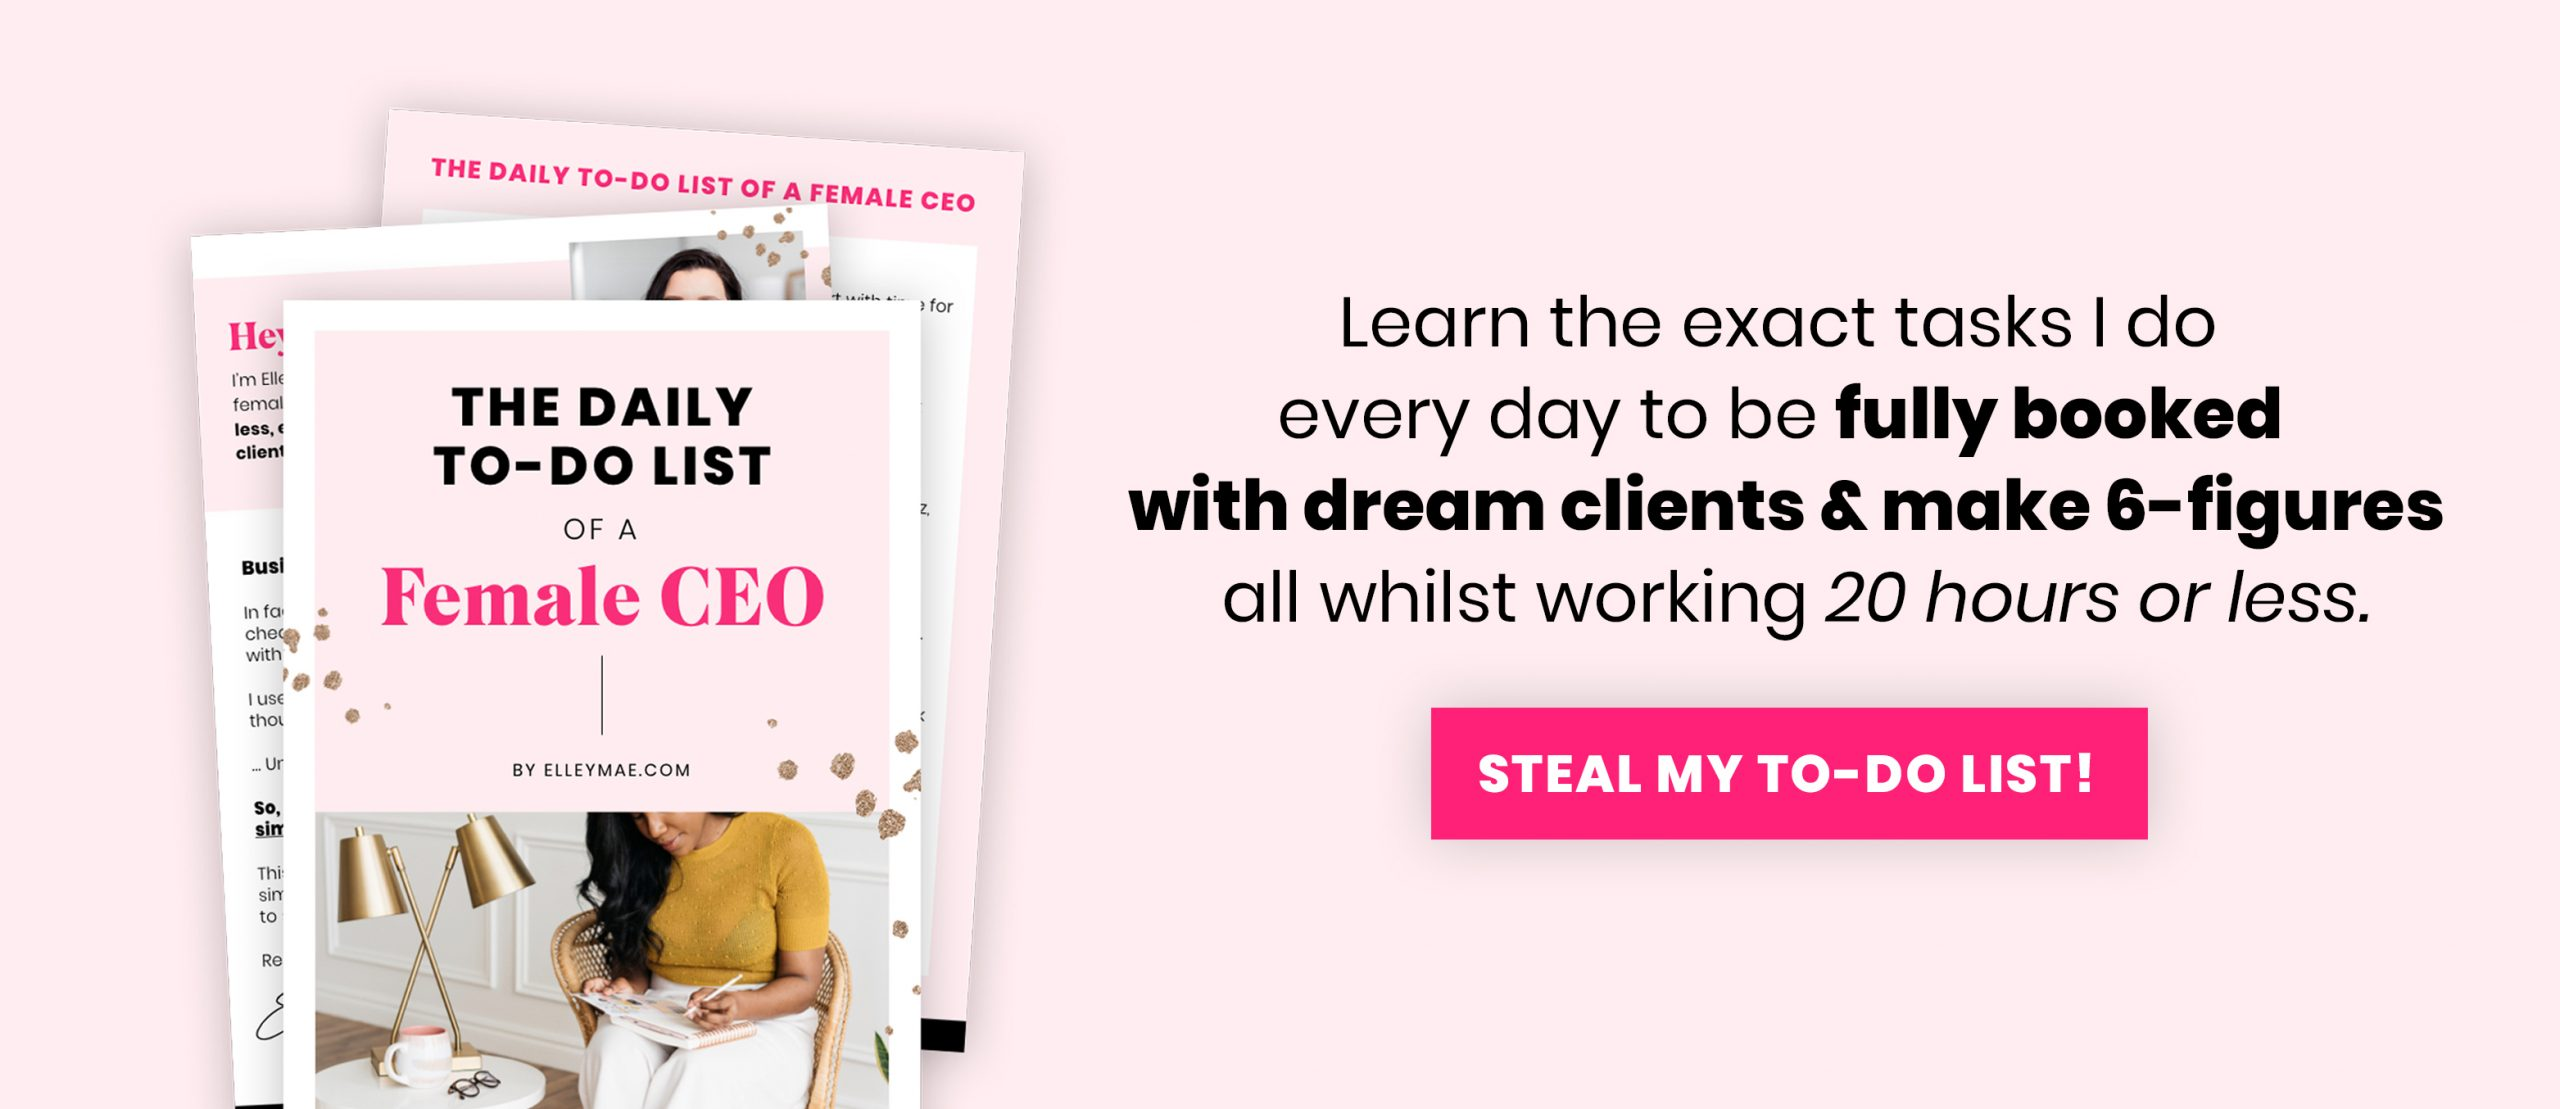 FREE TO-DO LIST FOR FEMALE ENTREPRENEURS | Steal my daily to-do list of the business tasks I do to make 6-figures, be fully booked with dream clients & work less than 20 hours a week! Get it now at elleymae.com/ceo-list